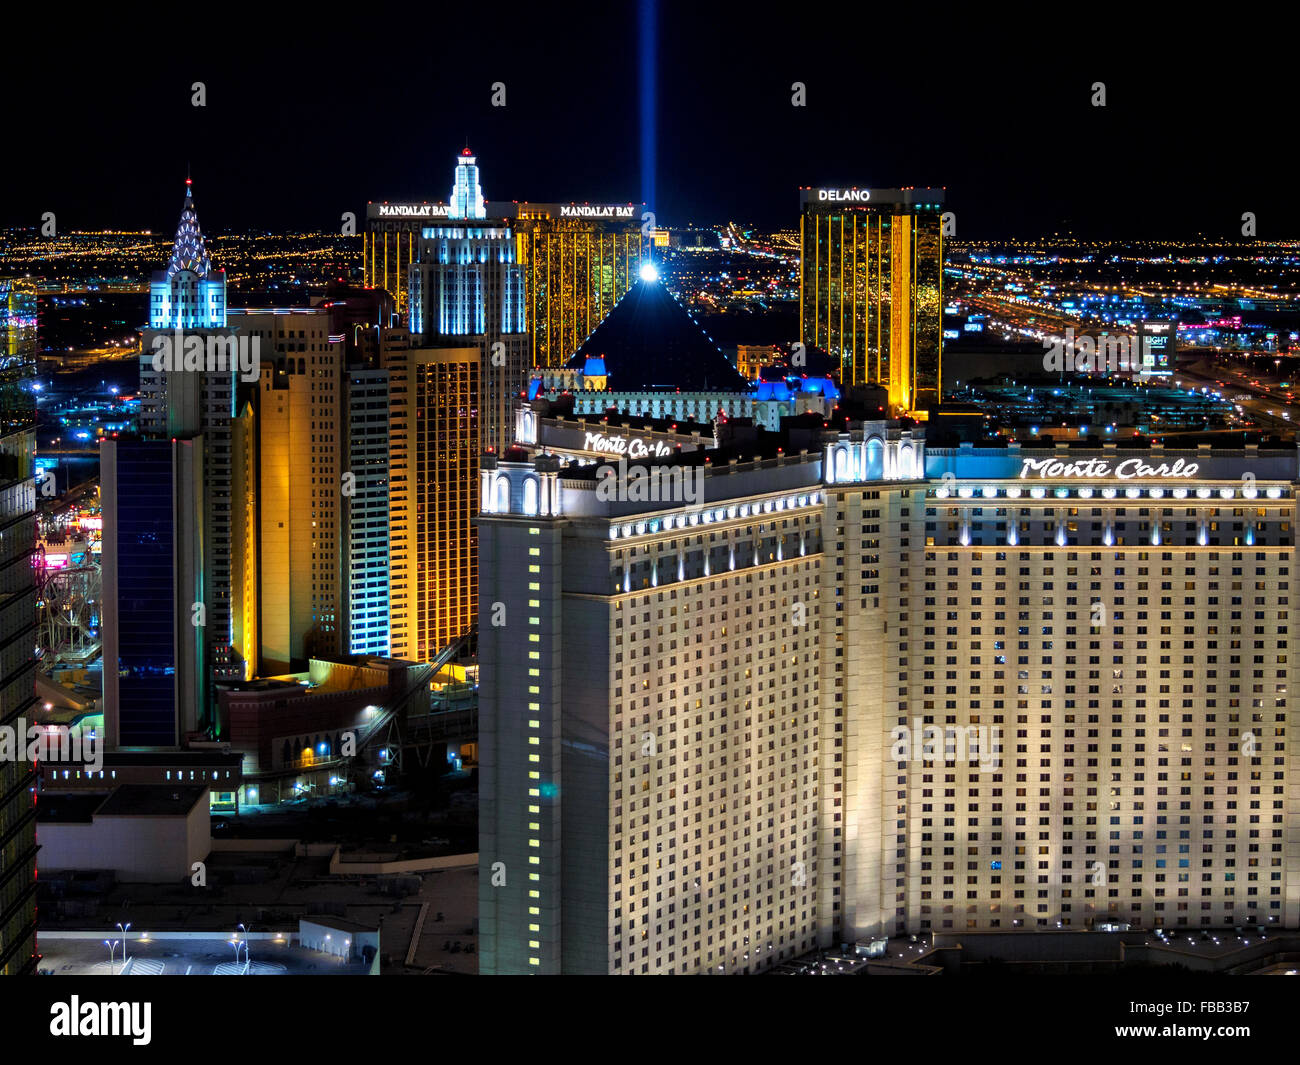 high-view-of-hotels-and-casino-lights-on-the-strip-from-above-lit-FBB3B7.jpg